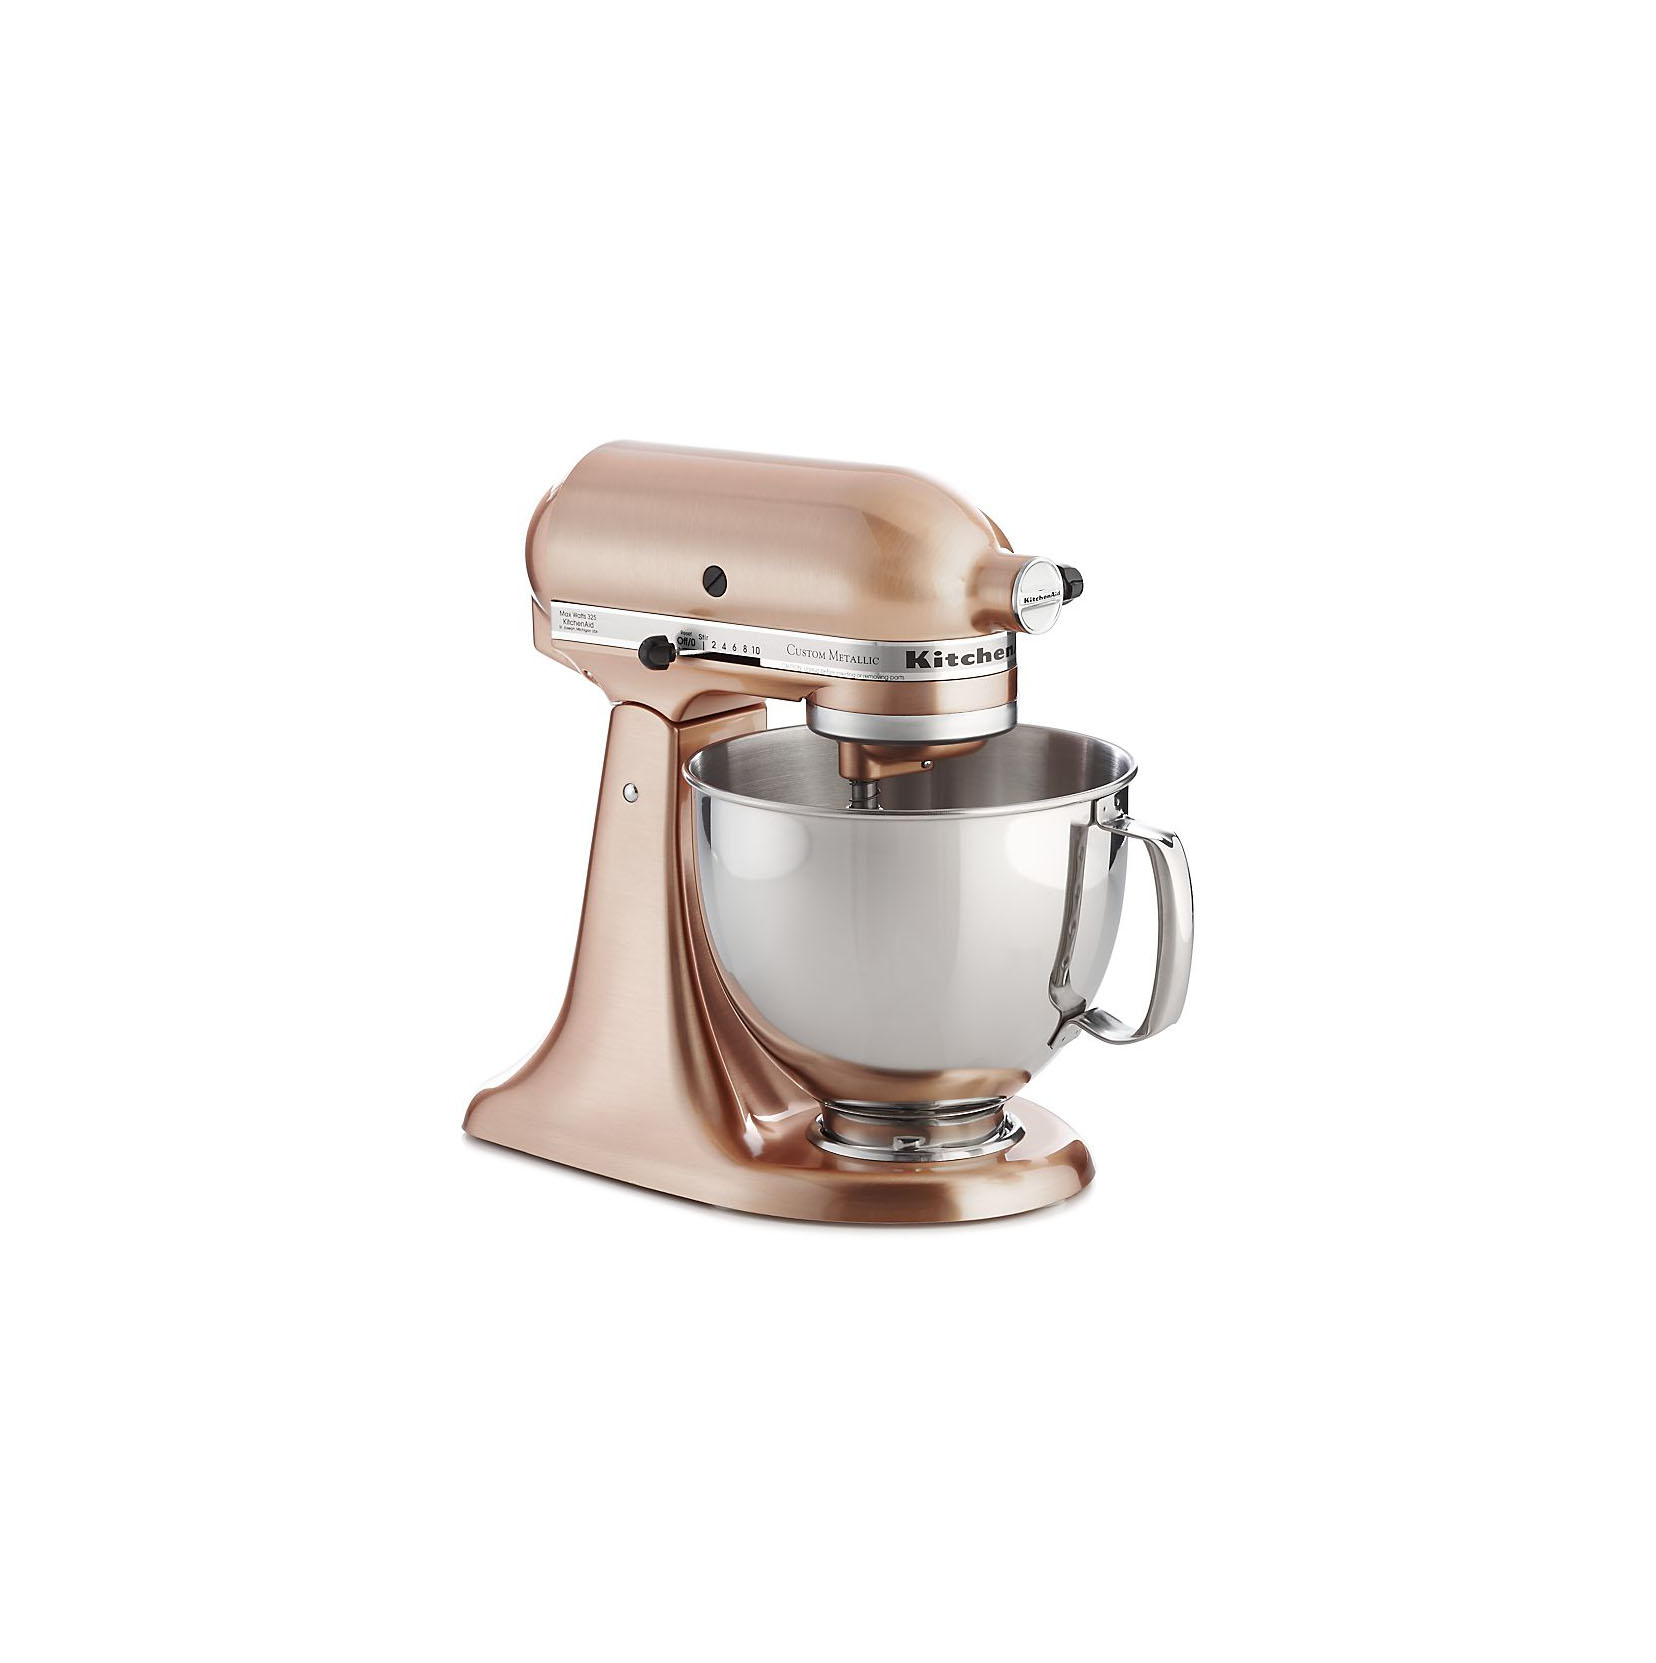 Why Copper Will Never Go Out of Style | Real Simple on copper kitchen aid mix, kistchen aid copper mixer, copper range, copper knives, copper dresser, copper cooking, copper plated kitchenaid mixer, copper dining room, copper mixer kitchenaid metallic series, copper pearl kitchenaid mixer, copper kitchenaid mixer 5 qt, copper kitchenaid pro 600 mixer,